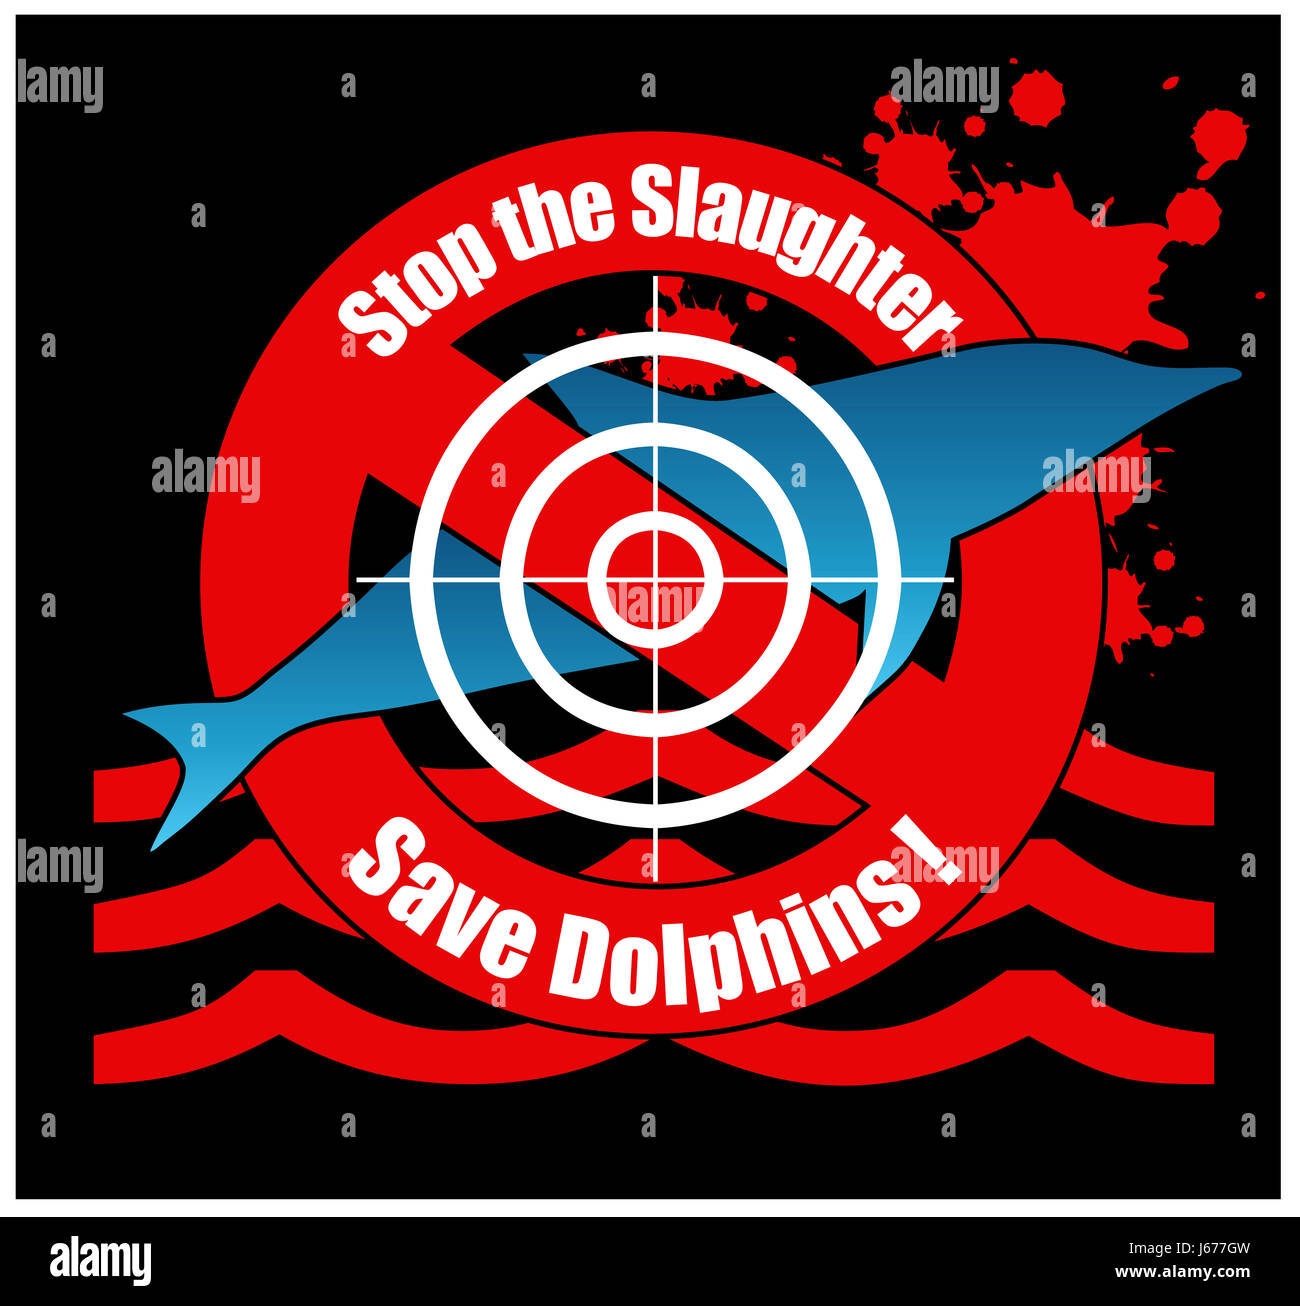 save the dolphins The latest tweets from save the dolphins (@savethedolphin1) #protectallwildlife #opkillingbay #tweet4taiji #opwhales #stopyulin2018 #emptythetanks #opfunkill #animalrights #stopthecull.